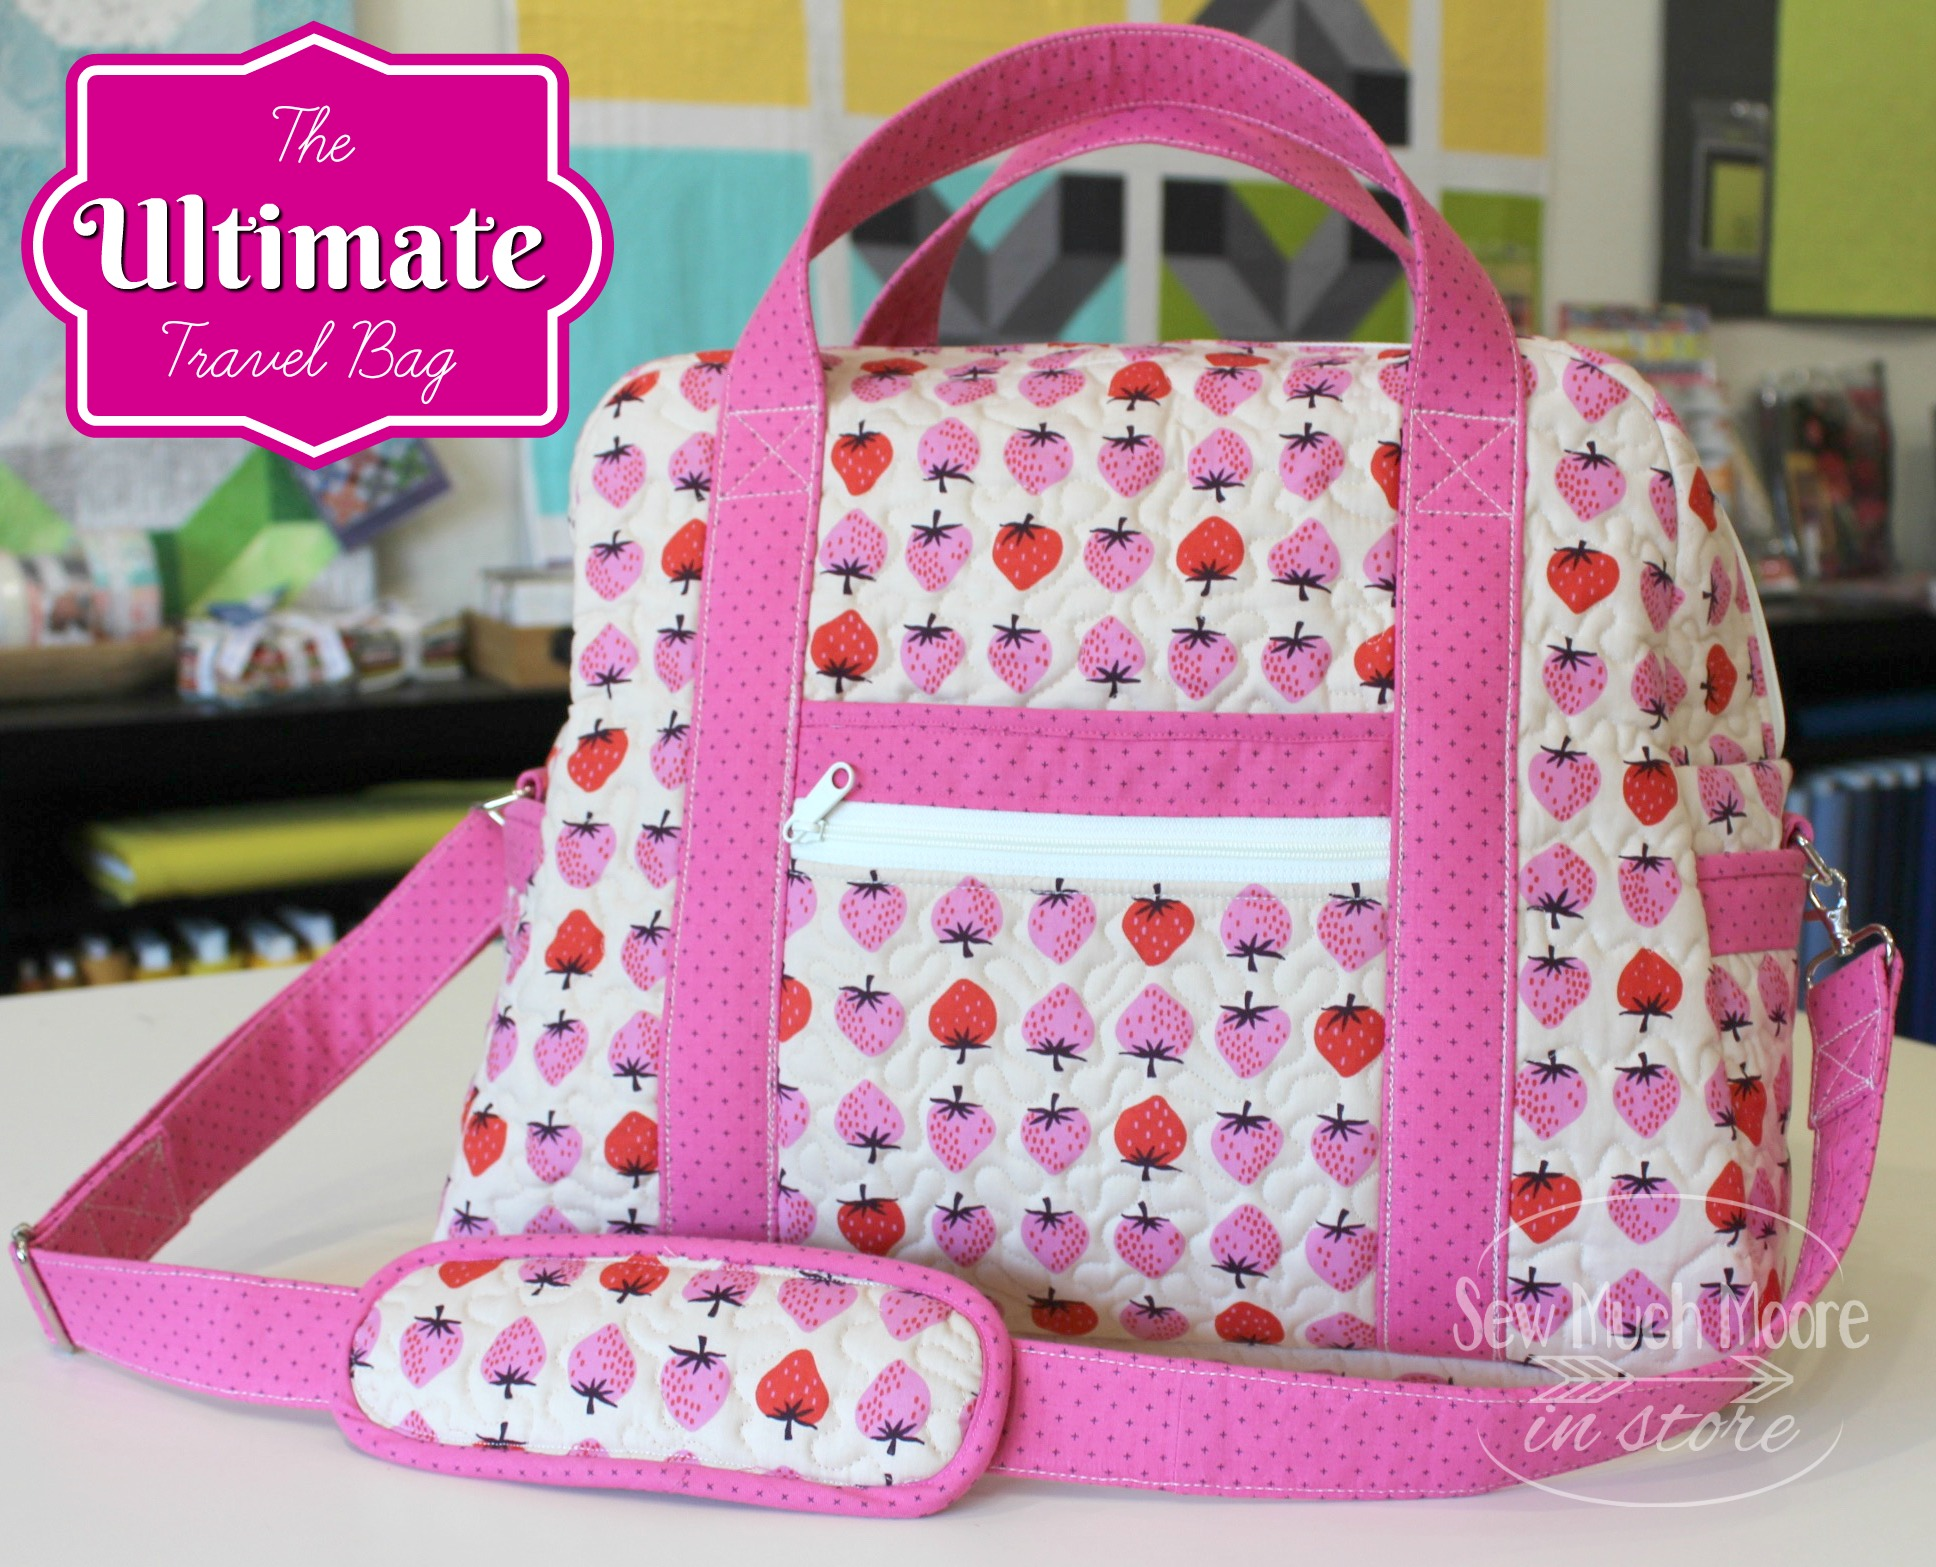 Let me tell you all about it how to make your own Ultimate Travel Bag! Grab your pattern and watch the video. Let's get sewing! #sewing #UltimateTravelBag #ByAnnie #SewingPattern #VideoTutorial #Sew #HowToMake #Bag #StepByStep #SpringBreak #SummerVacation #Zippers #Makeup #Handmade #Travel #SewMuchMoore #SewMuchMooreInStore